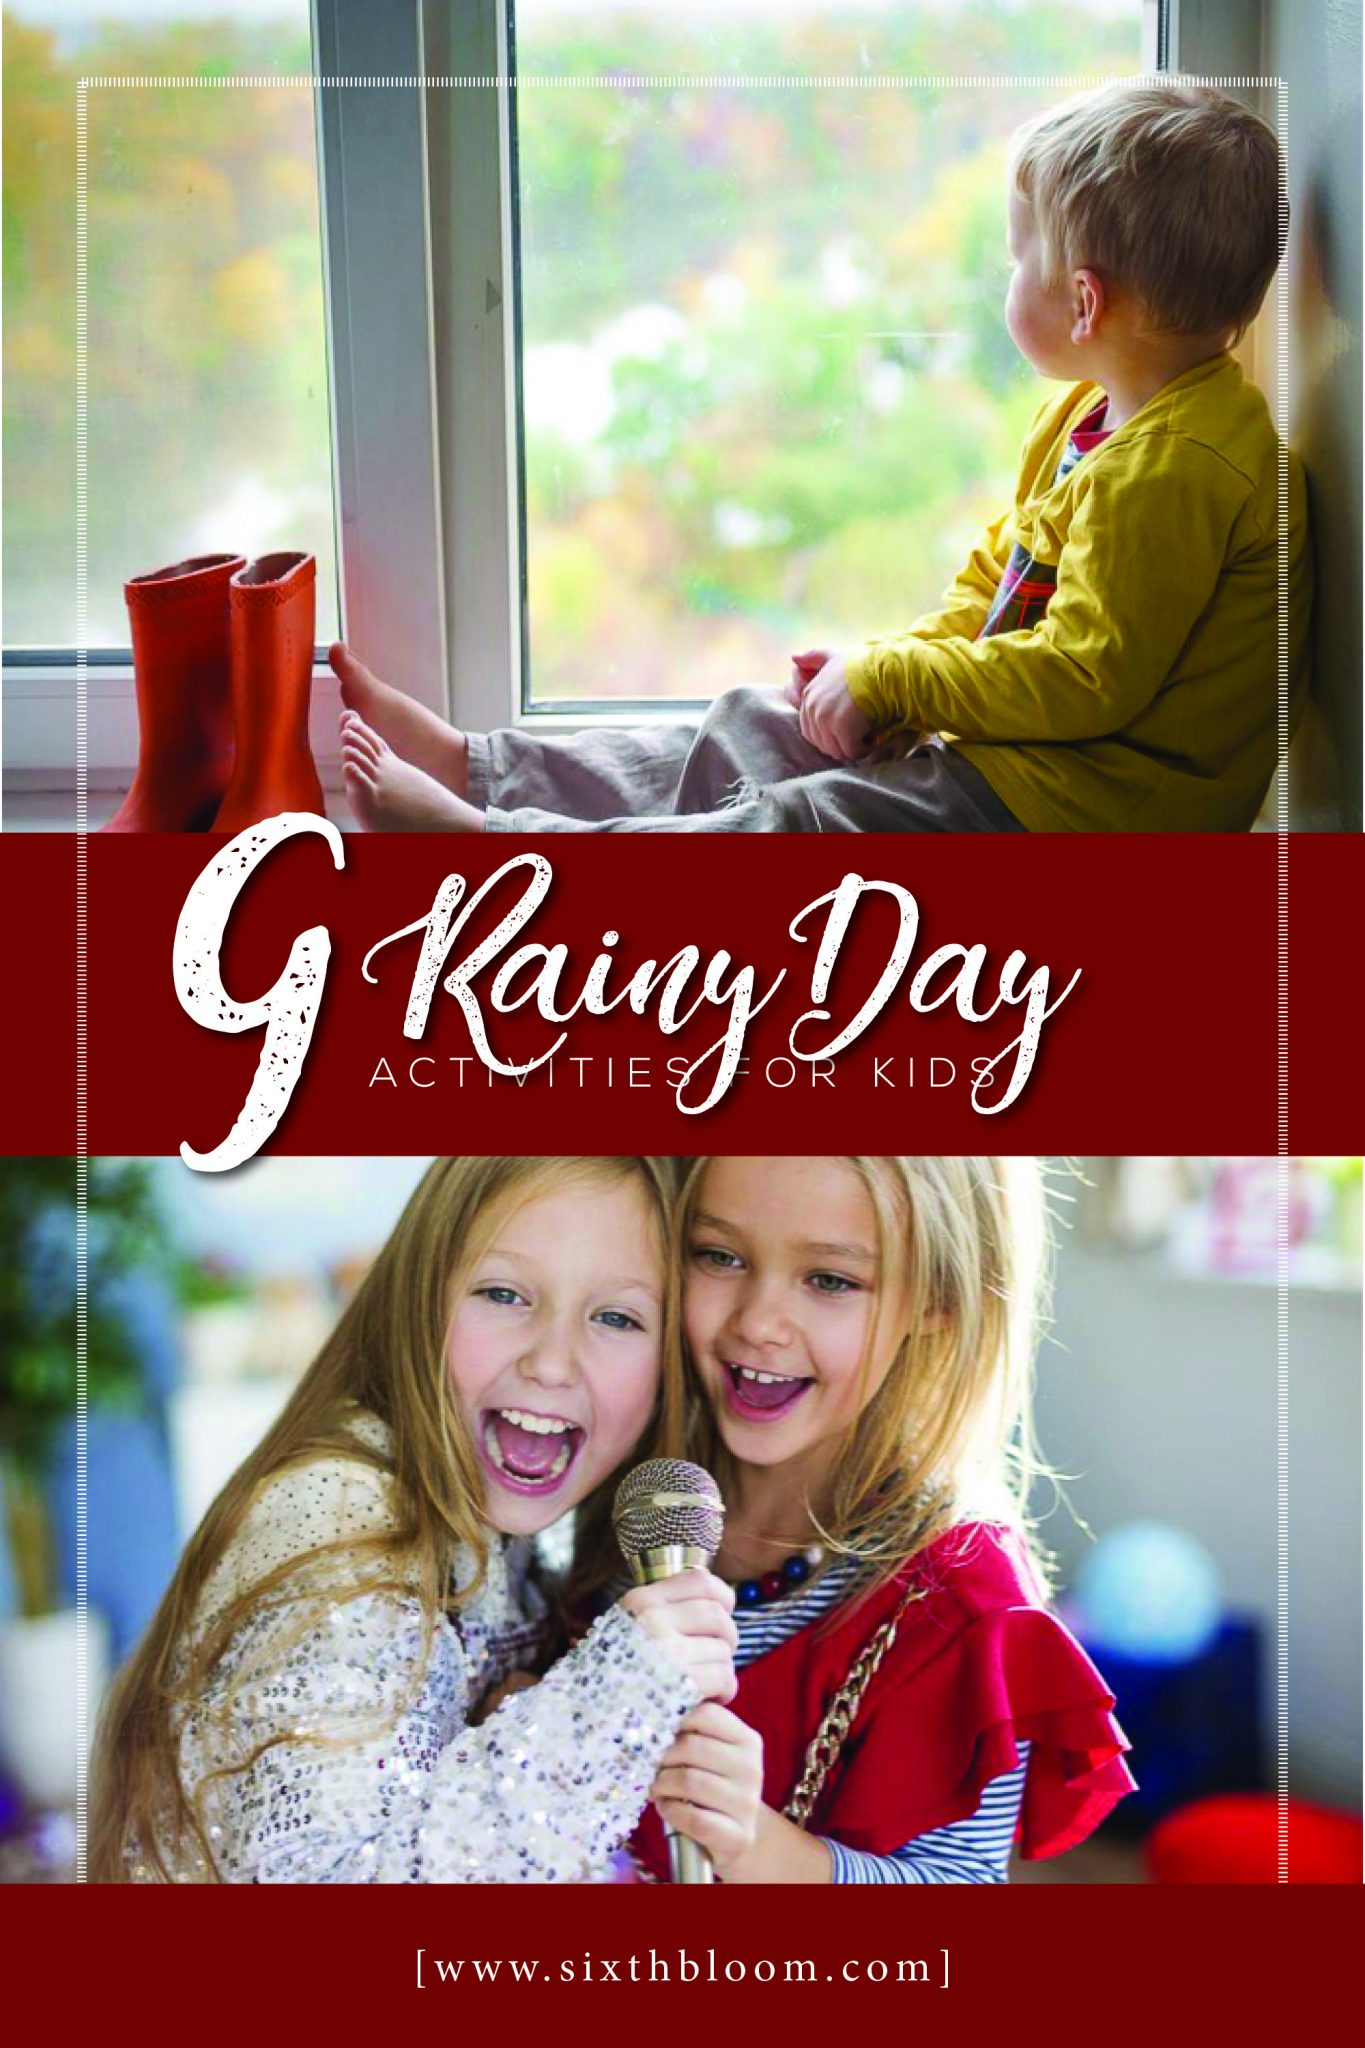 kids doing activities inside on a rainy day